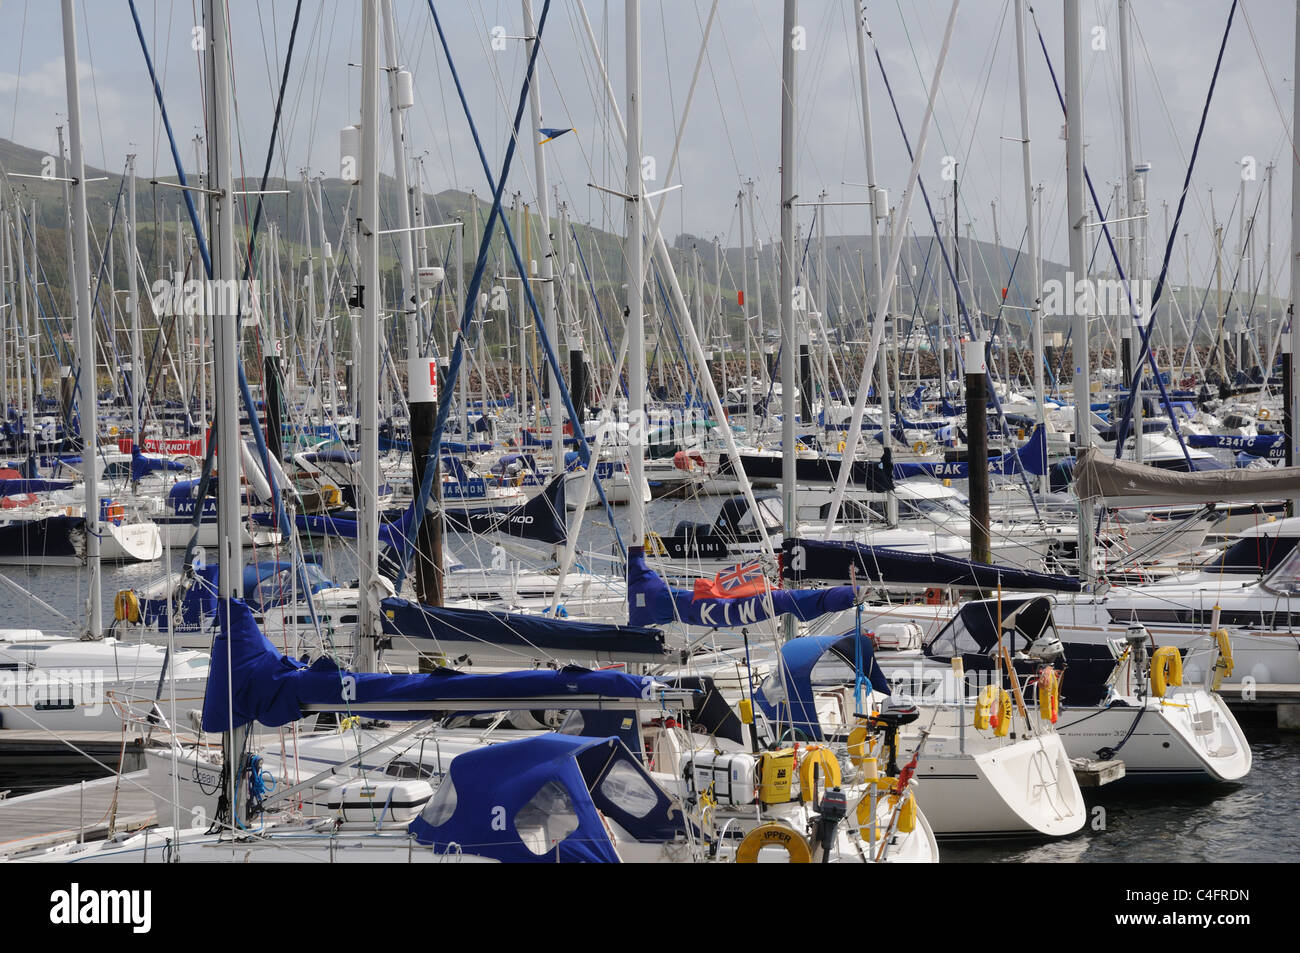 Yachts moored in Largs Yacht Haven, Ayrshire and Arran, Scotland Stock Photo